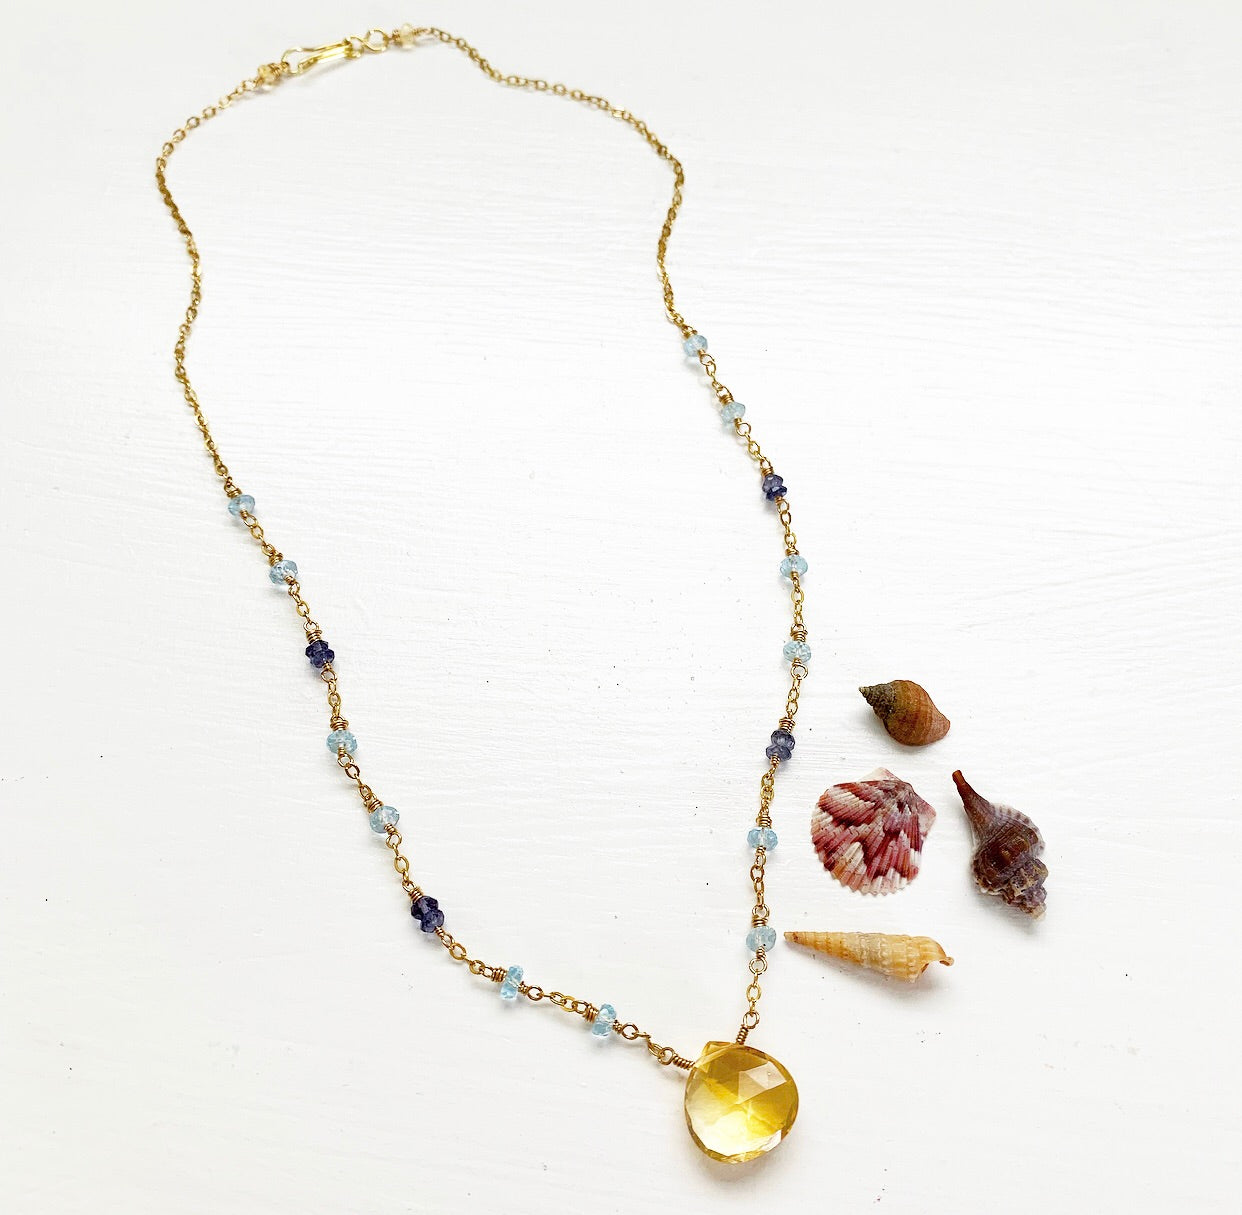 829-Gemstone Layering Necklace